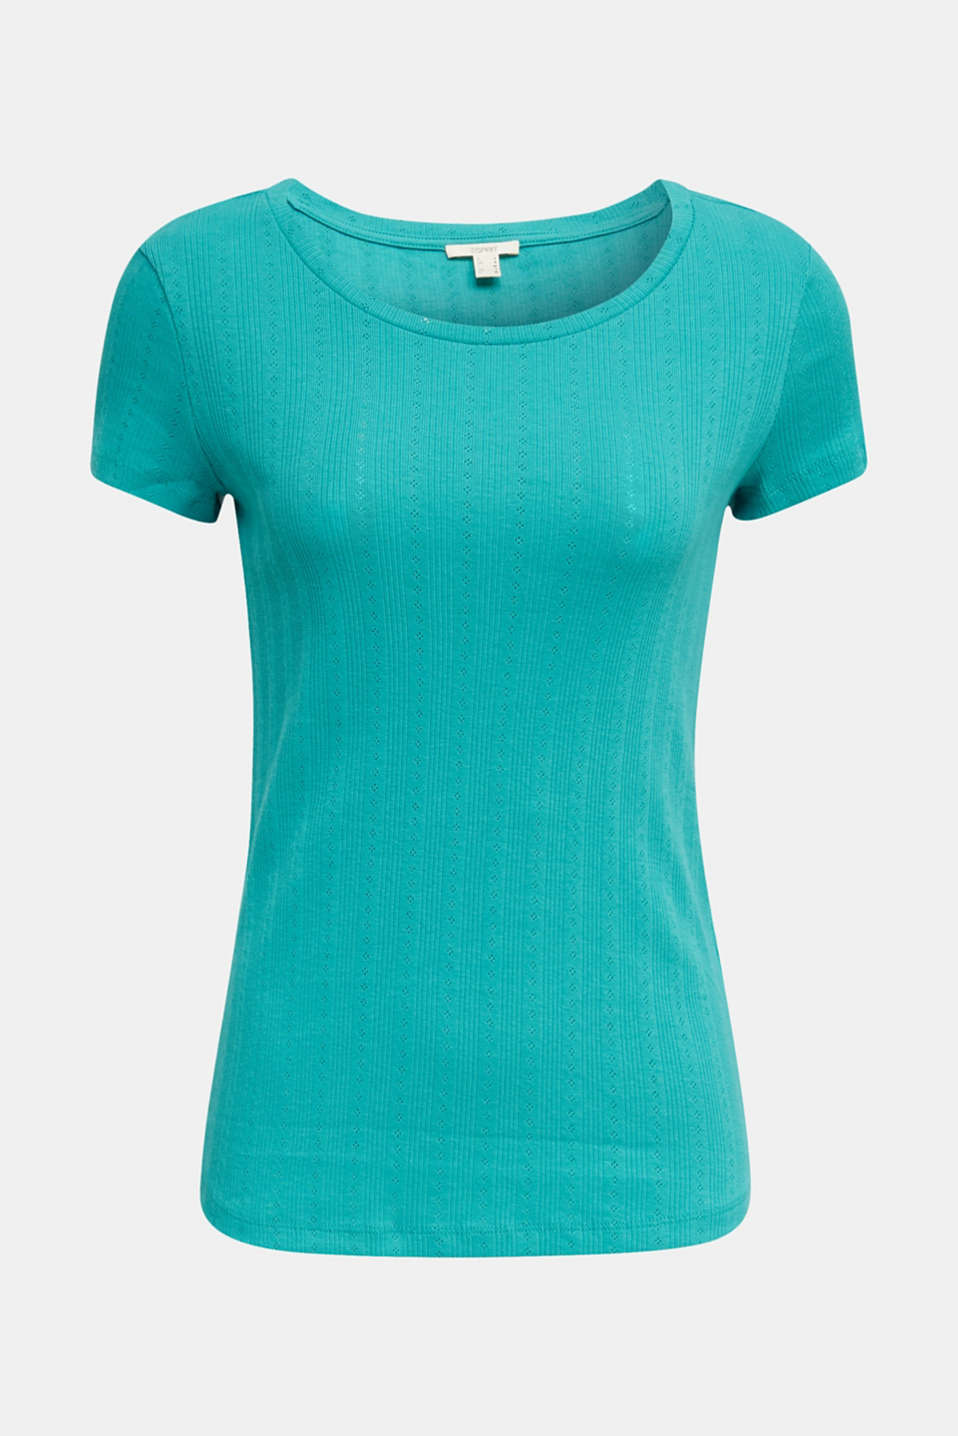 Openwork pattern top made of organic cotton, TEAL GREEN, detail image number 5